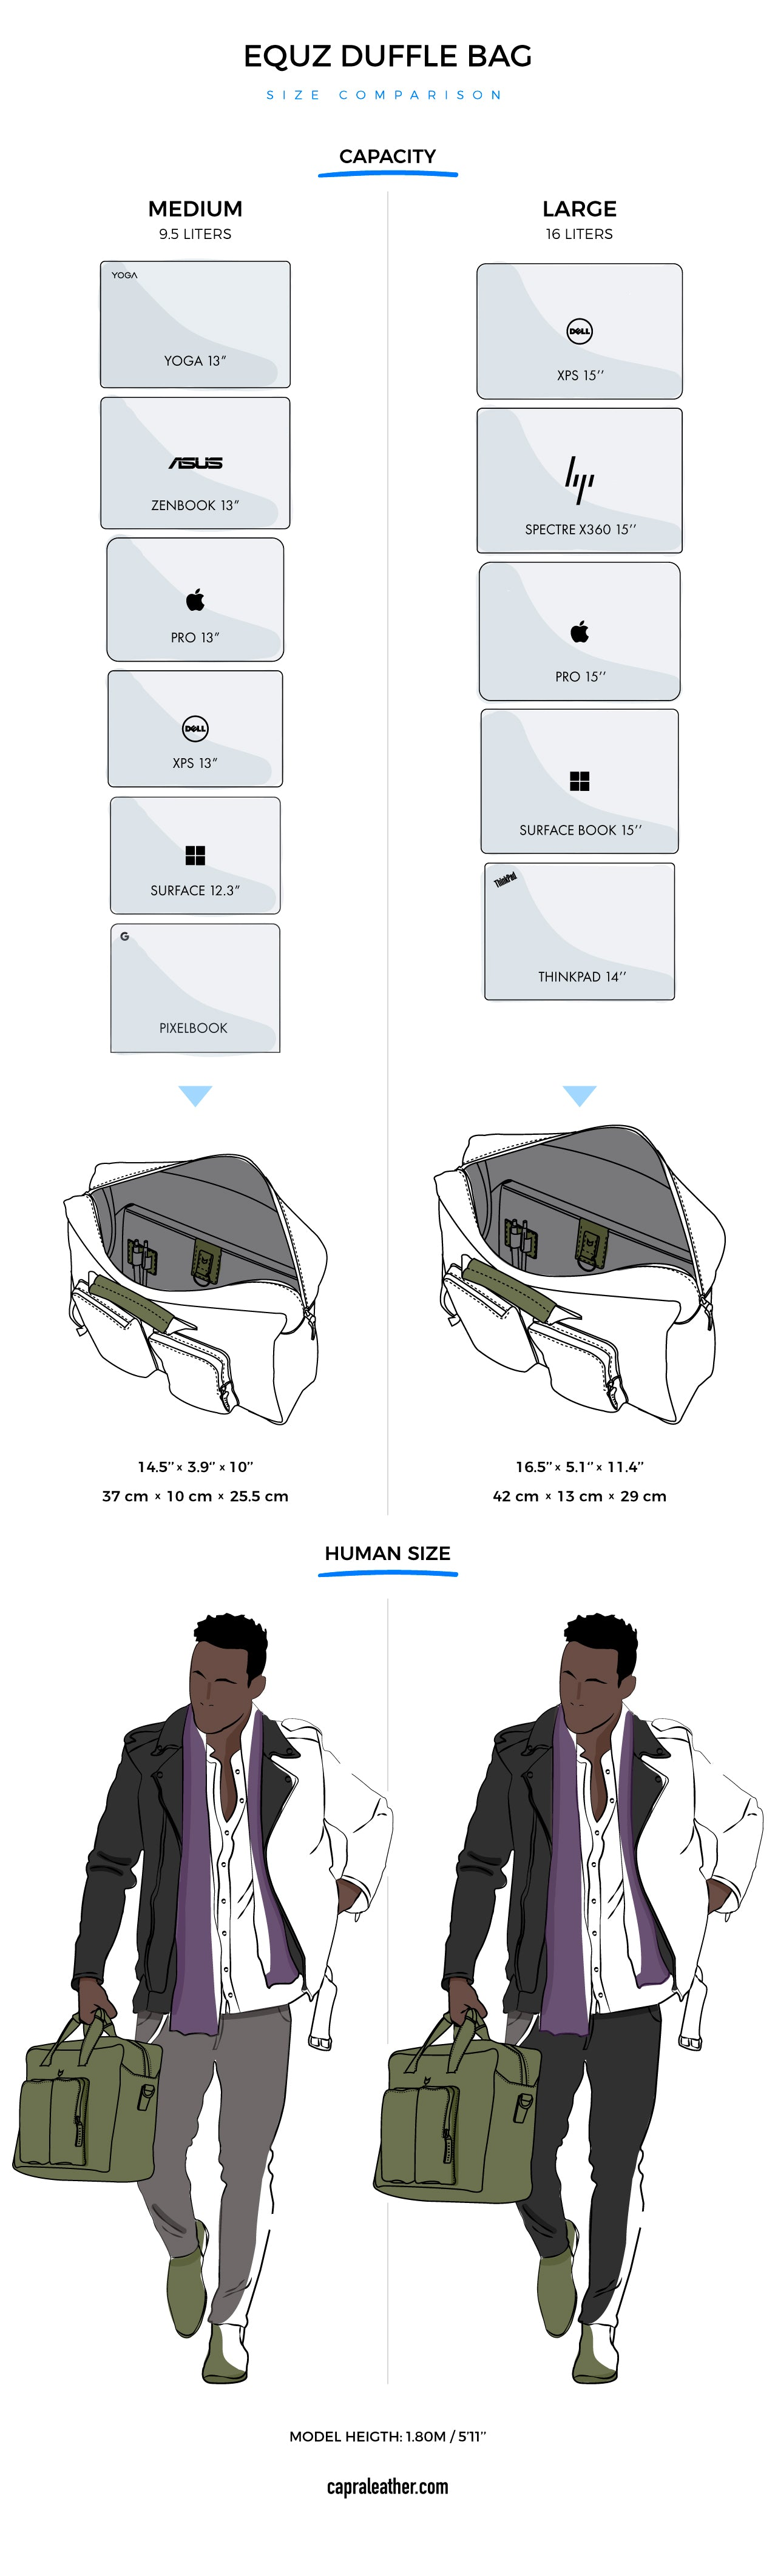 Equz Messenger Bag Size Chart